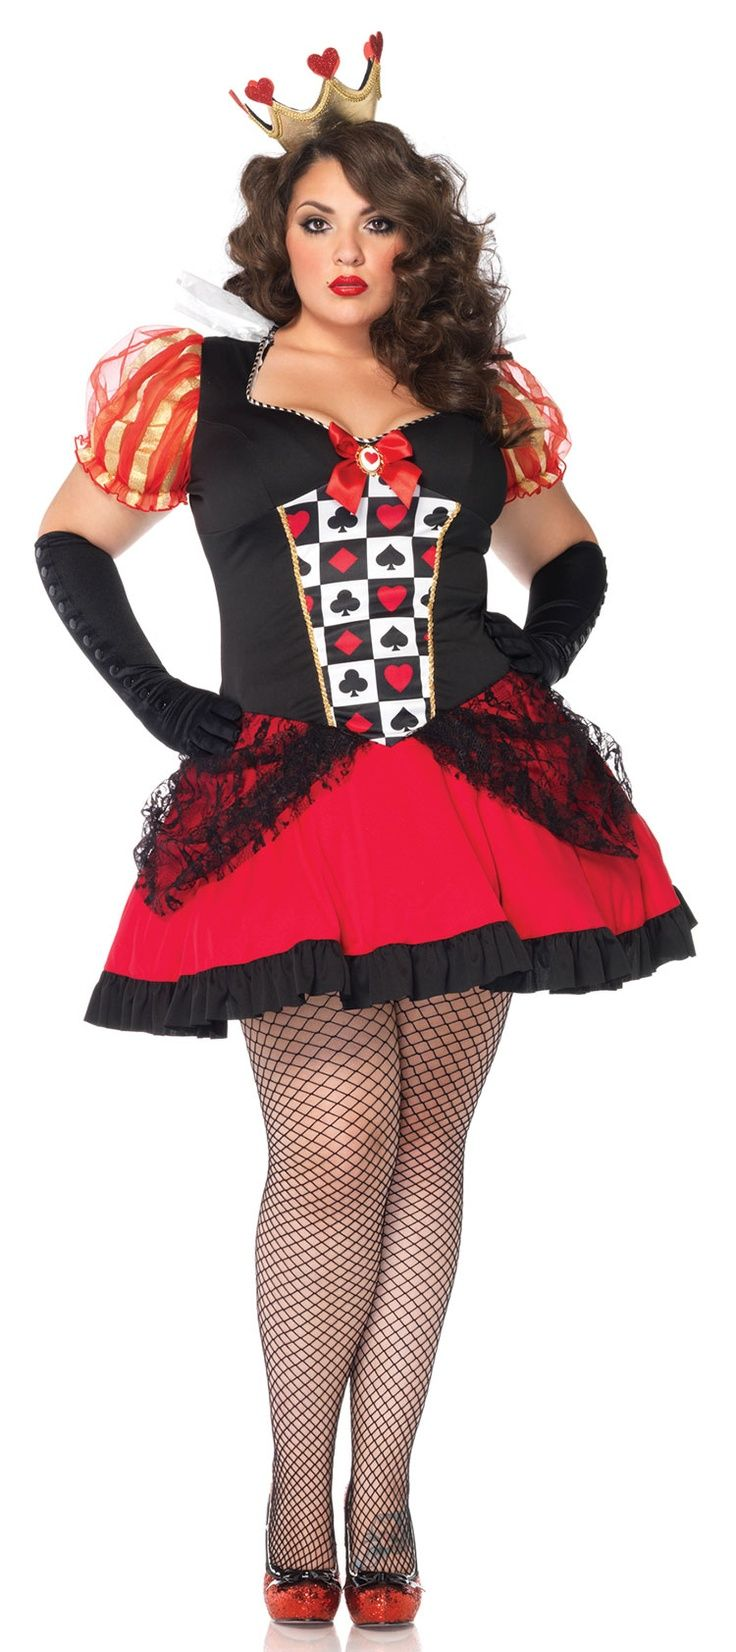 cool Queen of hearts plus size costume | plus size casual outfits ...